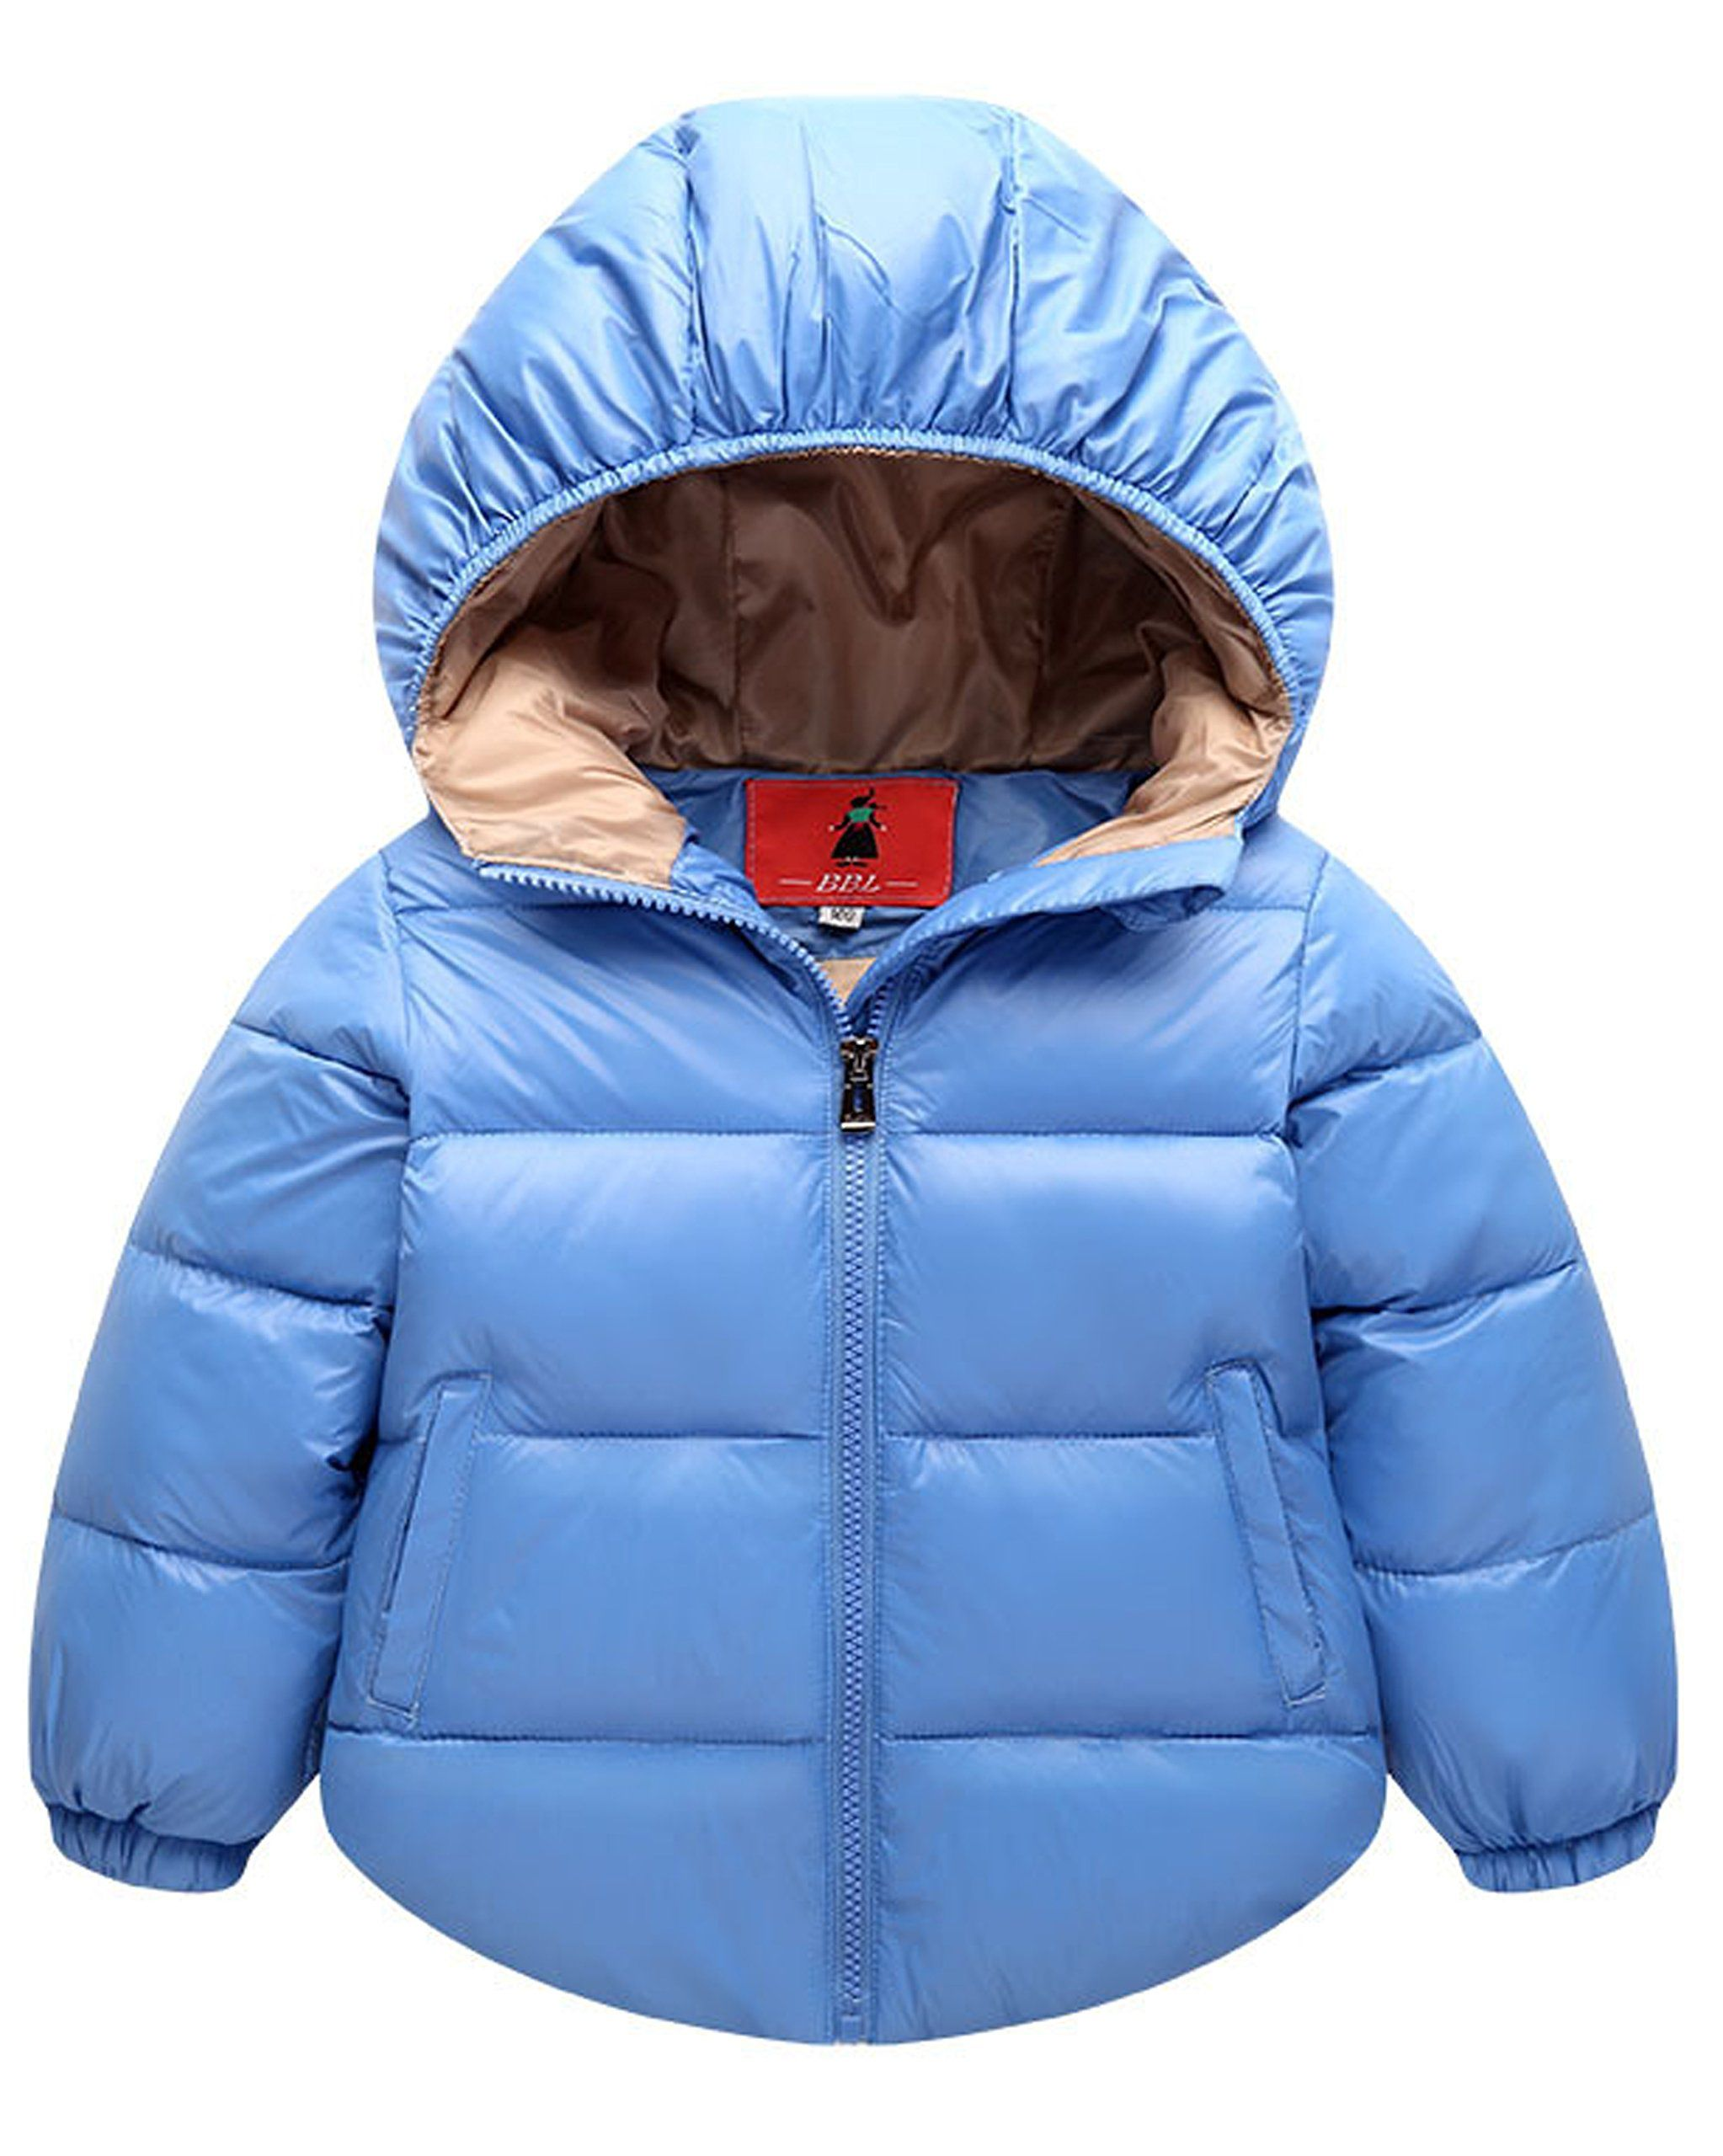 Aiffer Baby Boys Girls Hooded Coats Puffer Outerwear Winter Lightweight Jacket Size 90cm 6 12 Month 10 Kids Winter Coats Girls Girls Winter Coats Boys Jacket